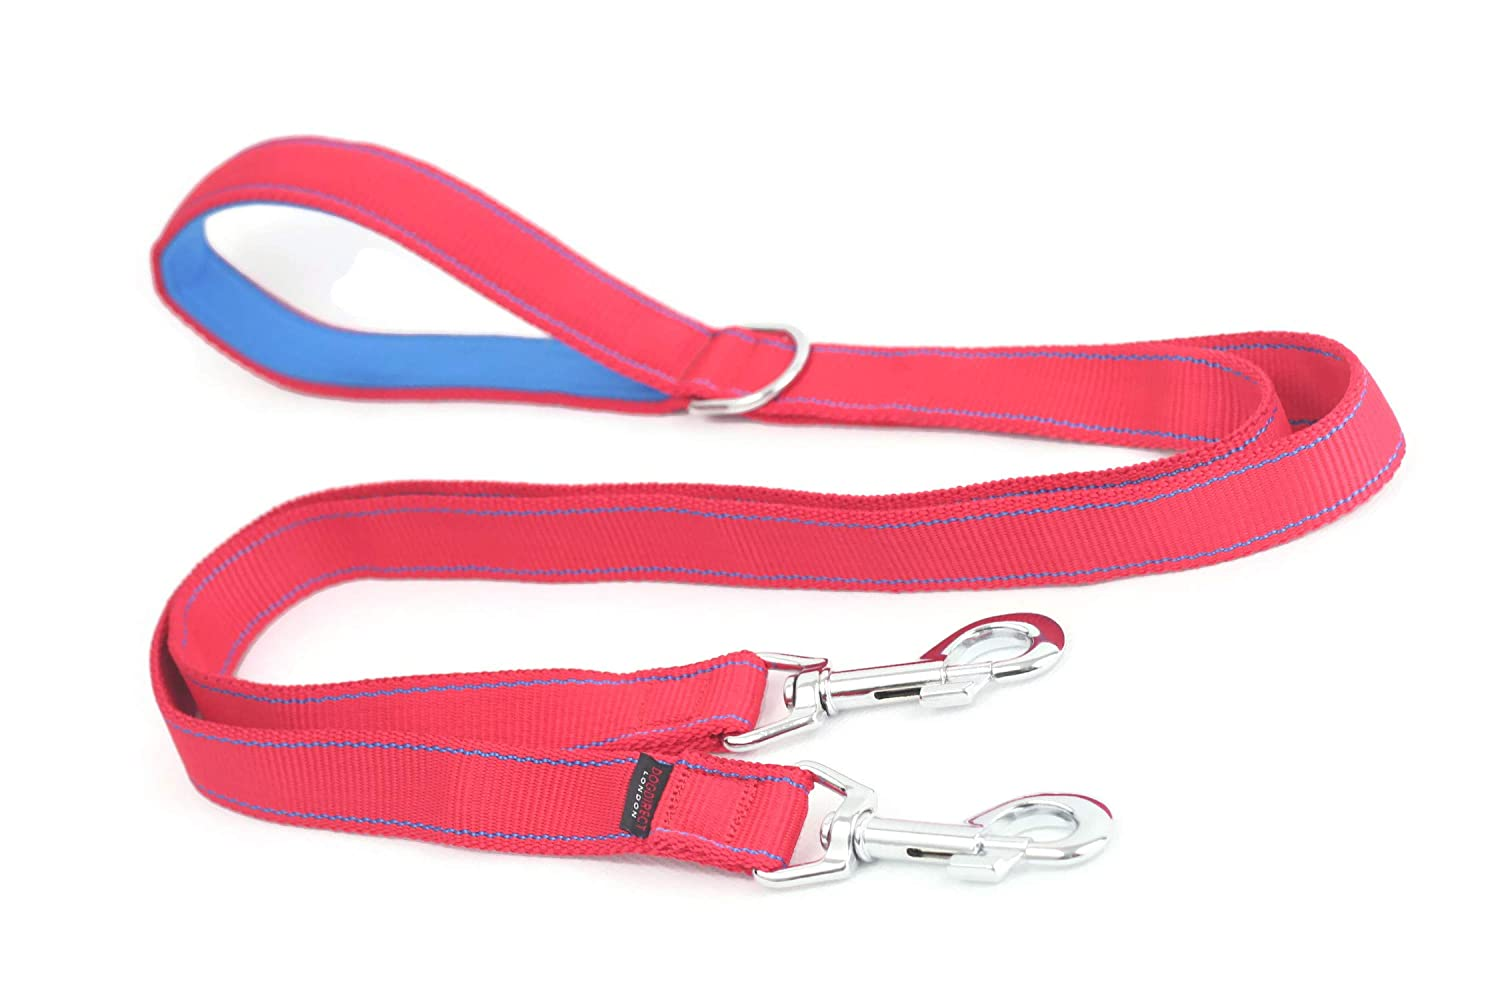 COUPLER DOUBLE DOG LEAD 100cm 1m 40in duplex with Lead DOUBLE with ADDITIONAL NEOPRENE HANDLE STRONG dog's leash   lead splitter HAND MADE, GENUINE DogDirect London Cou1mNeo (Red-bluee) DN6